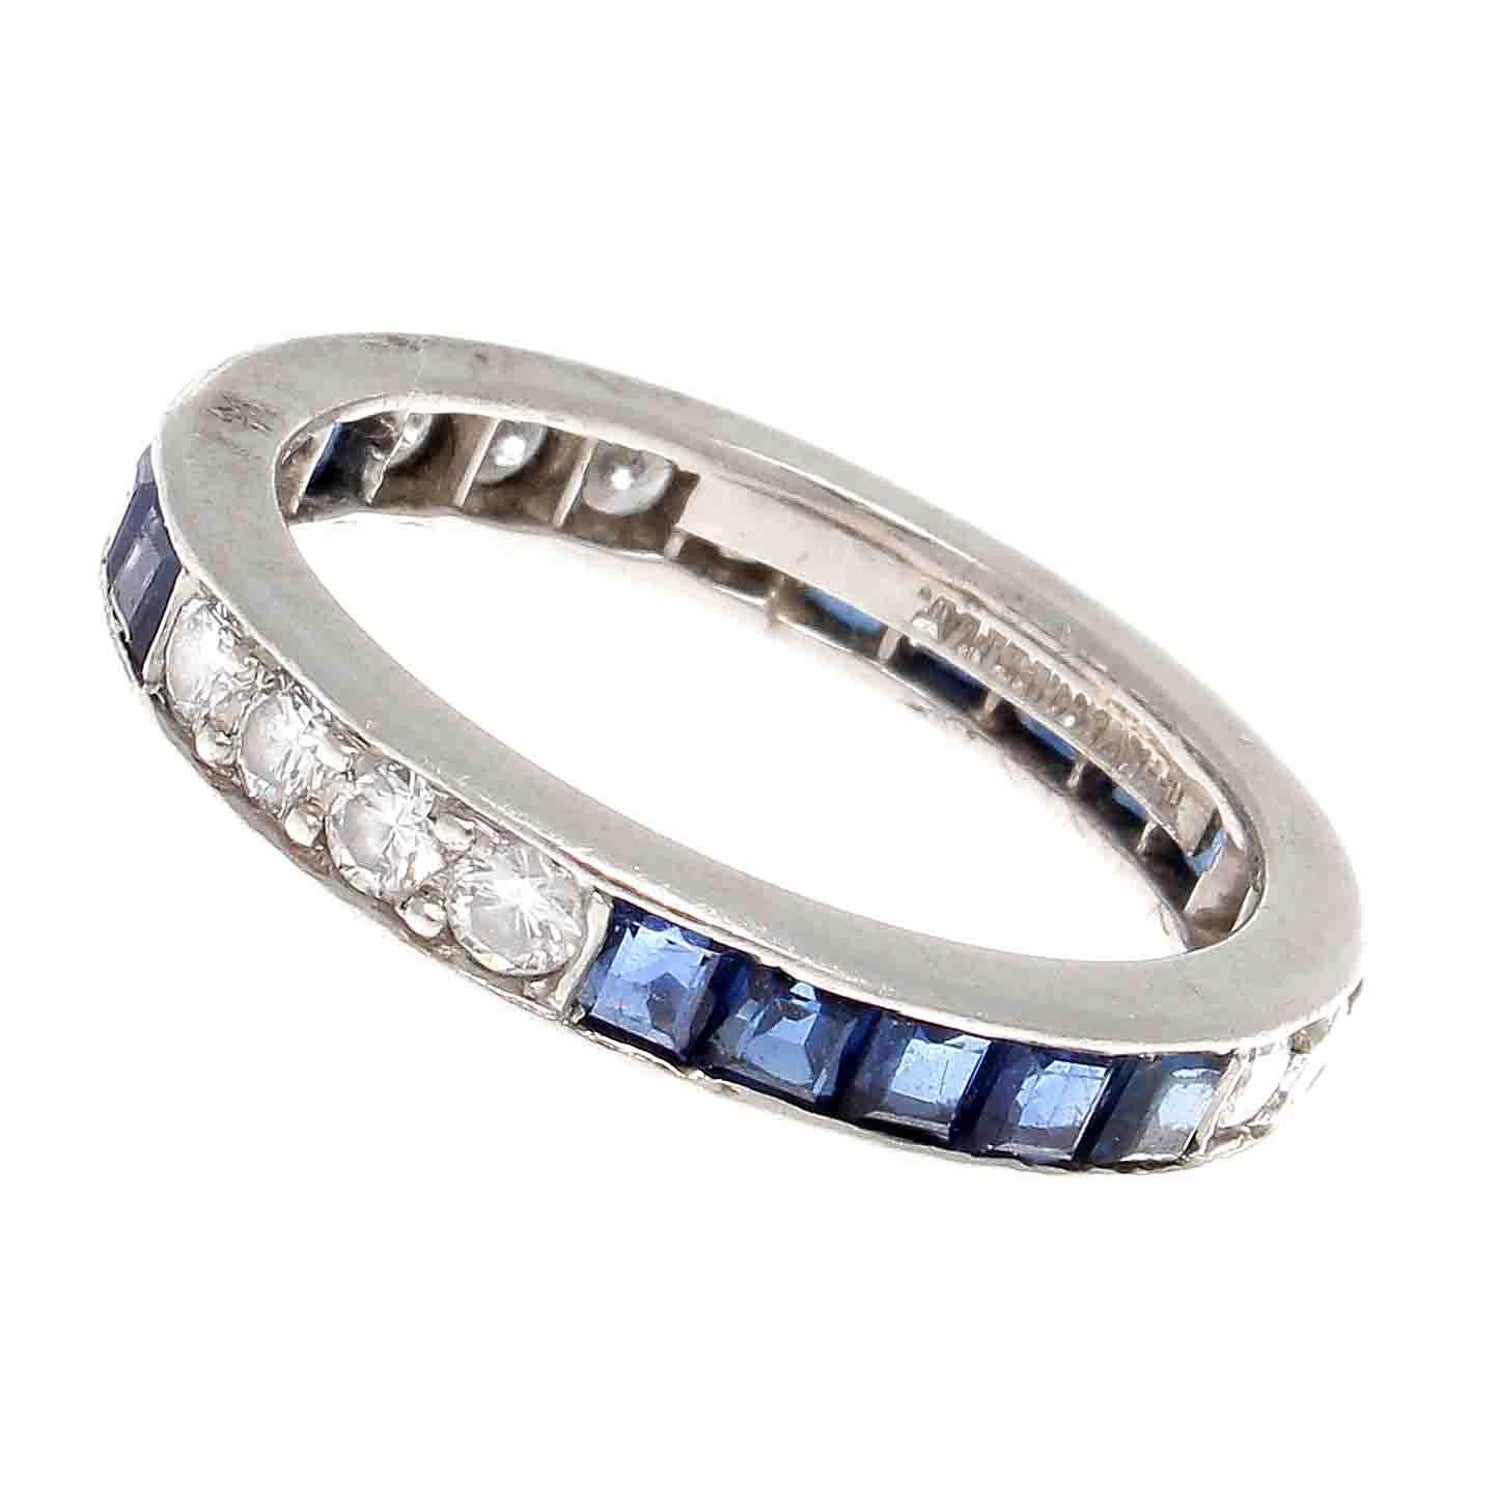 e10758156f25d Vintage Tiffany and Co. Sapphire Diamond Platinum Eternity Ring For ...